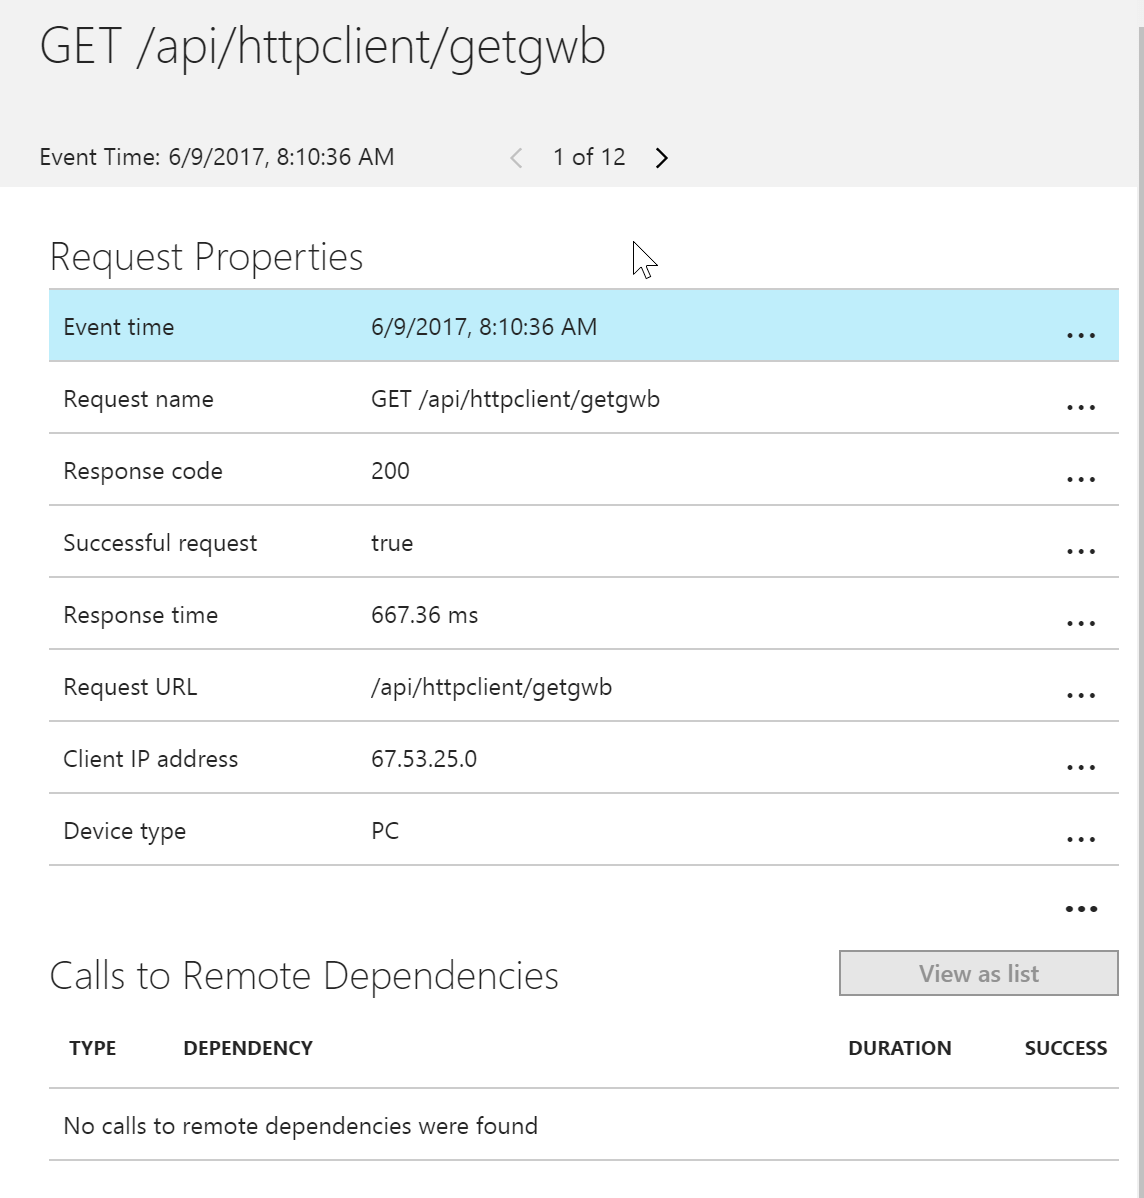 Application Insights View